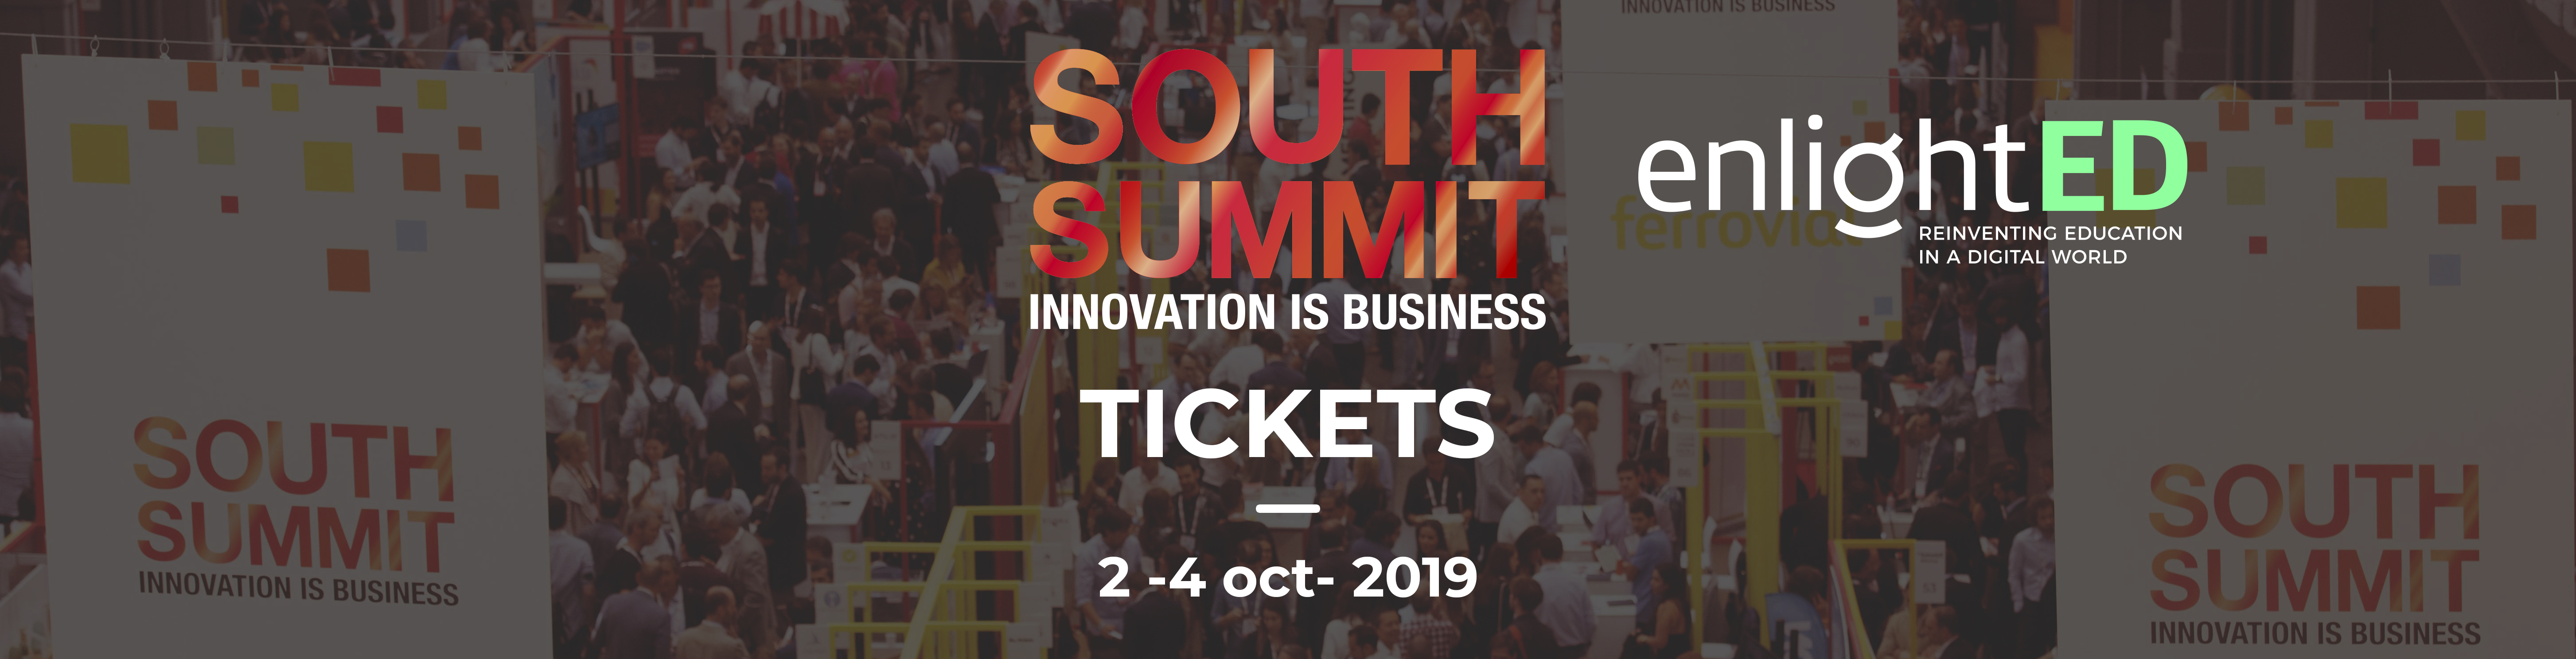 South Summit - EnlightED 2019